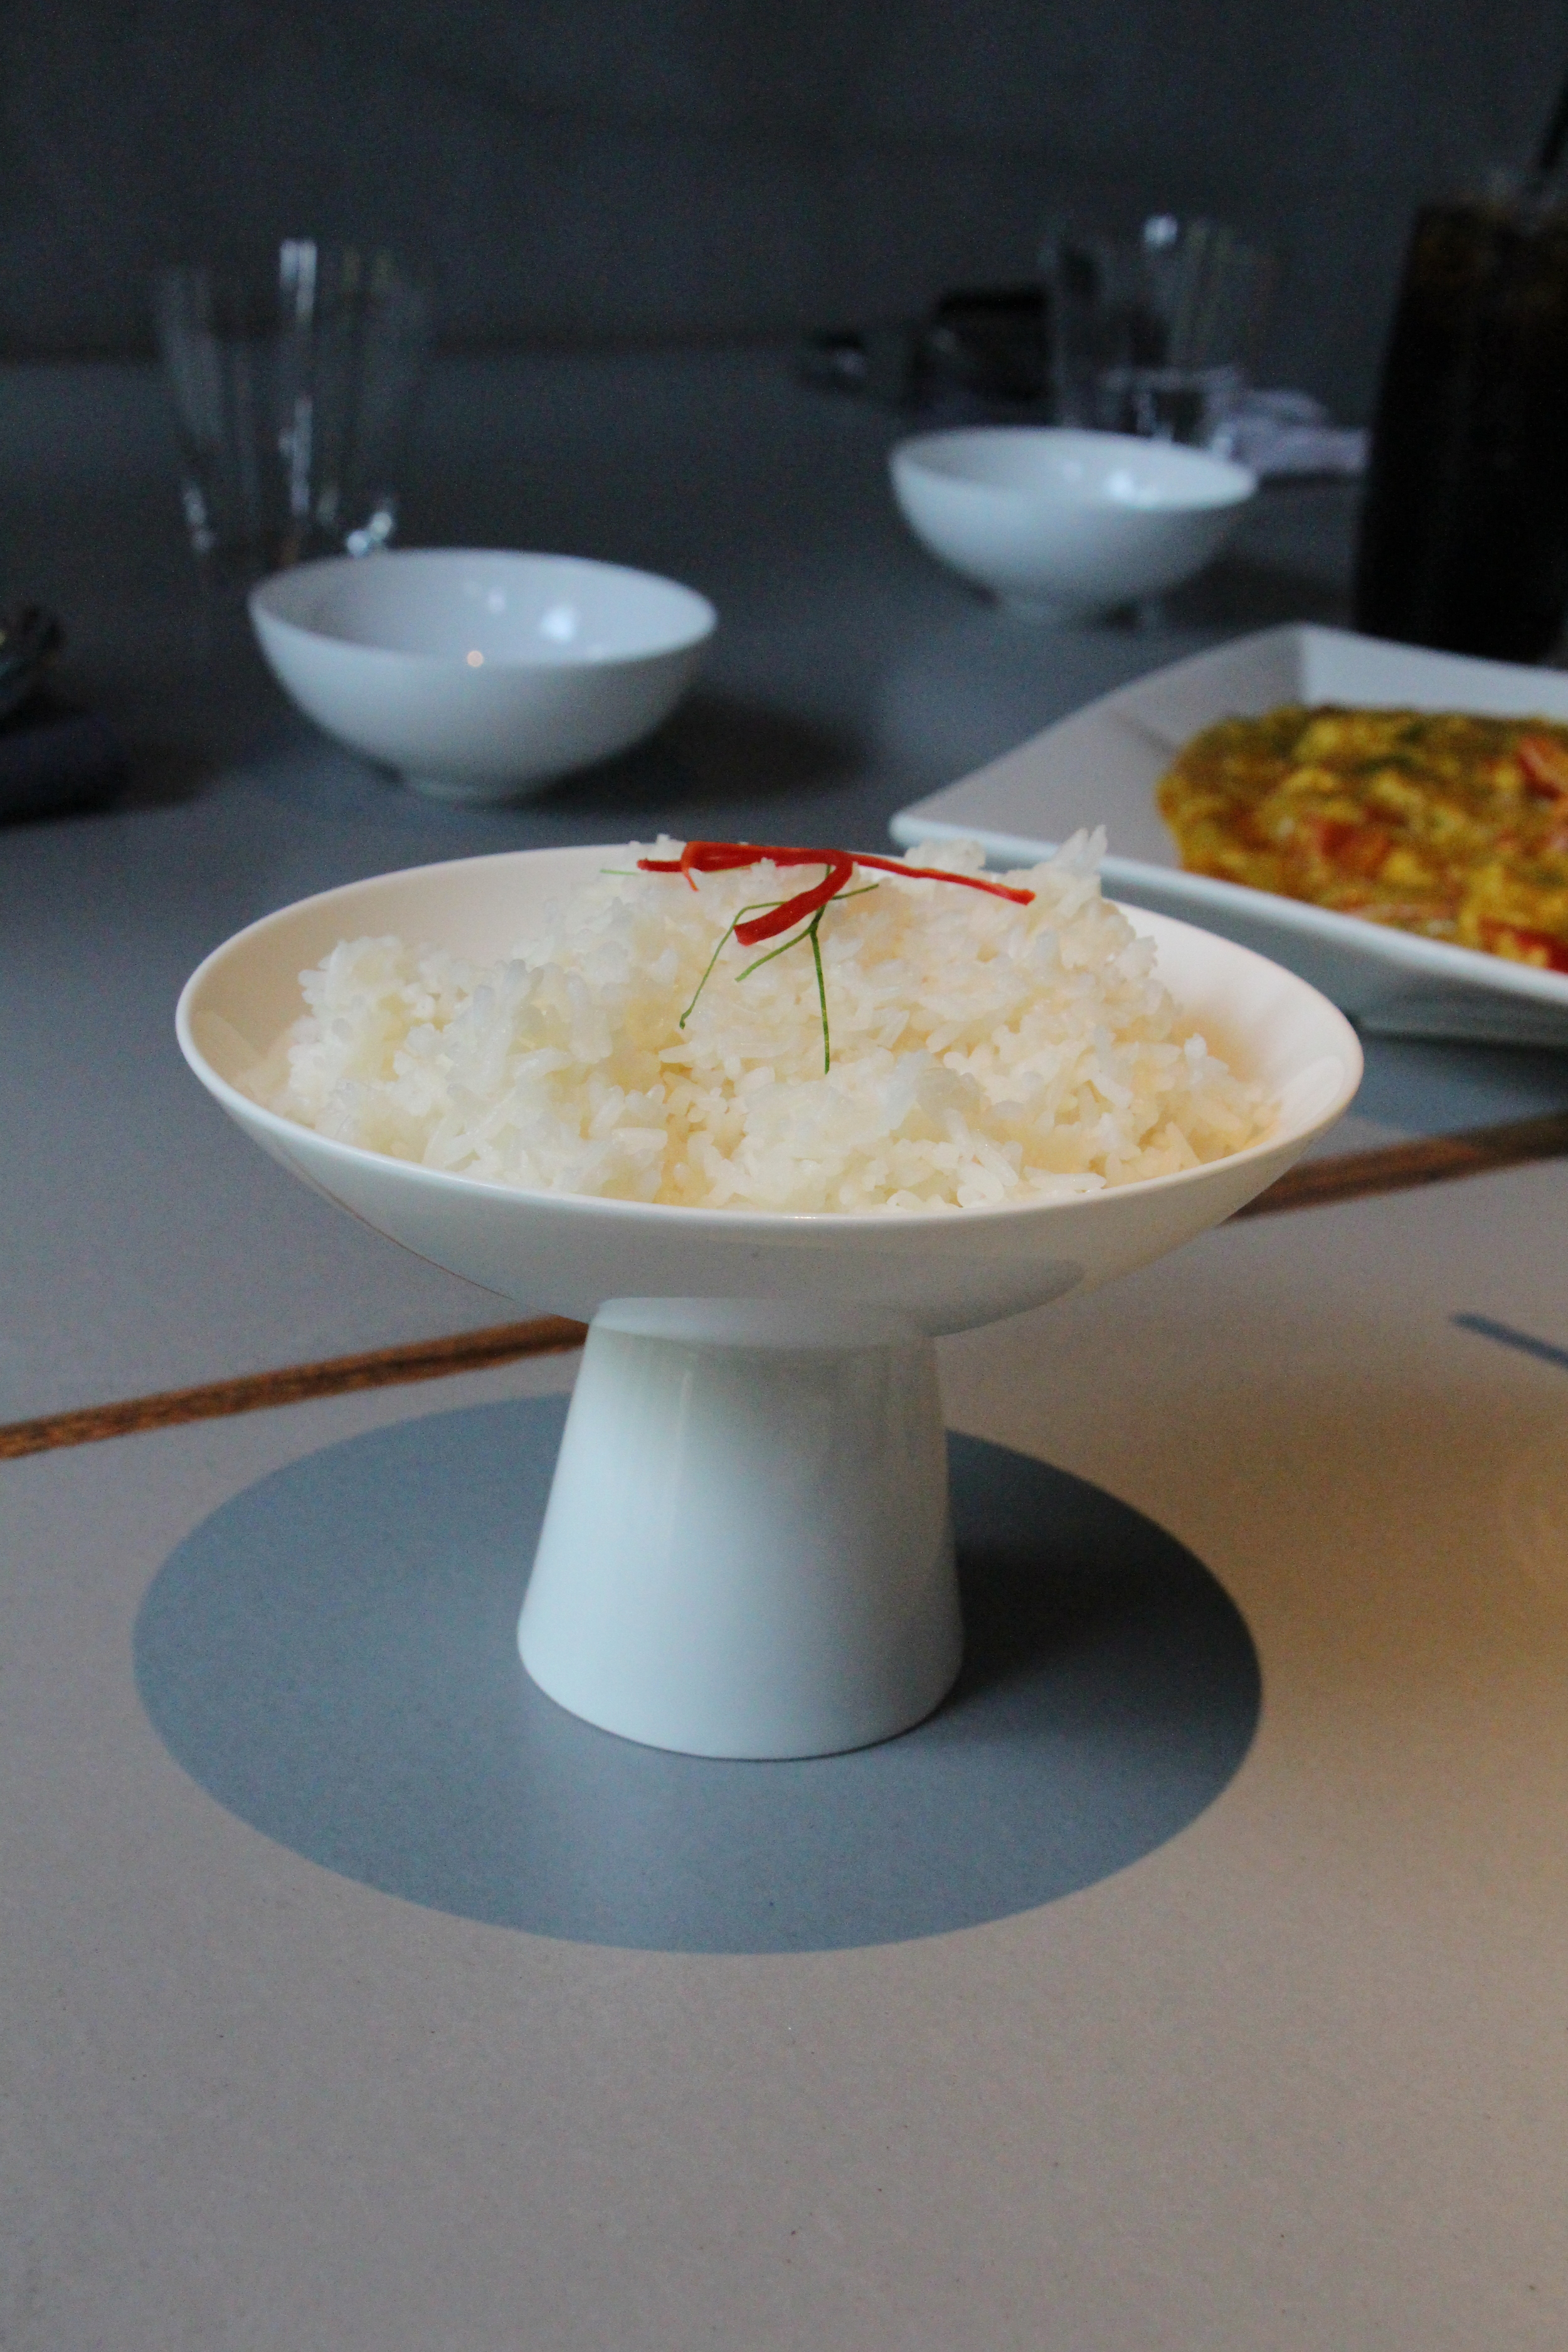 Small portioned rice, but is presented in an eccentric little bowl